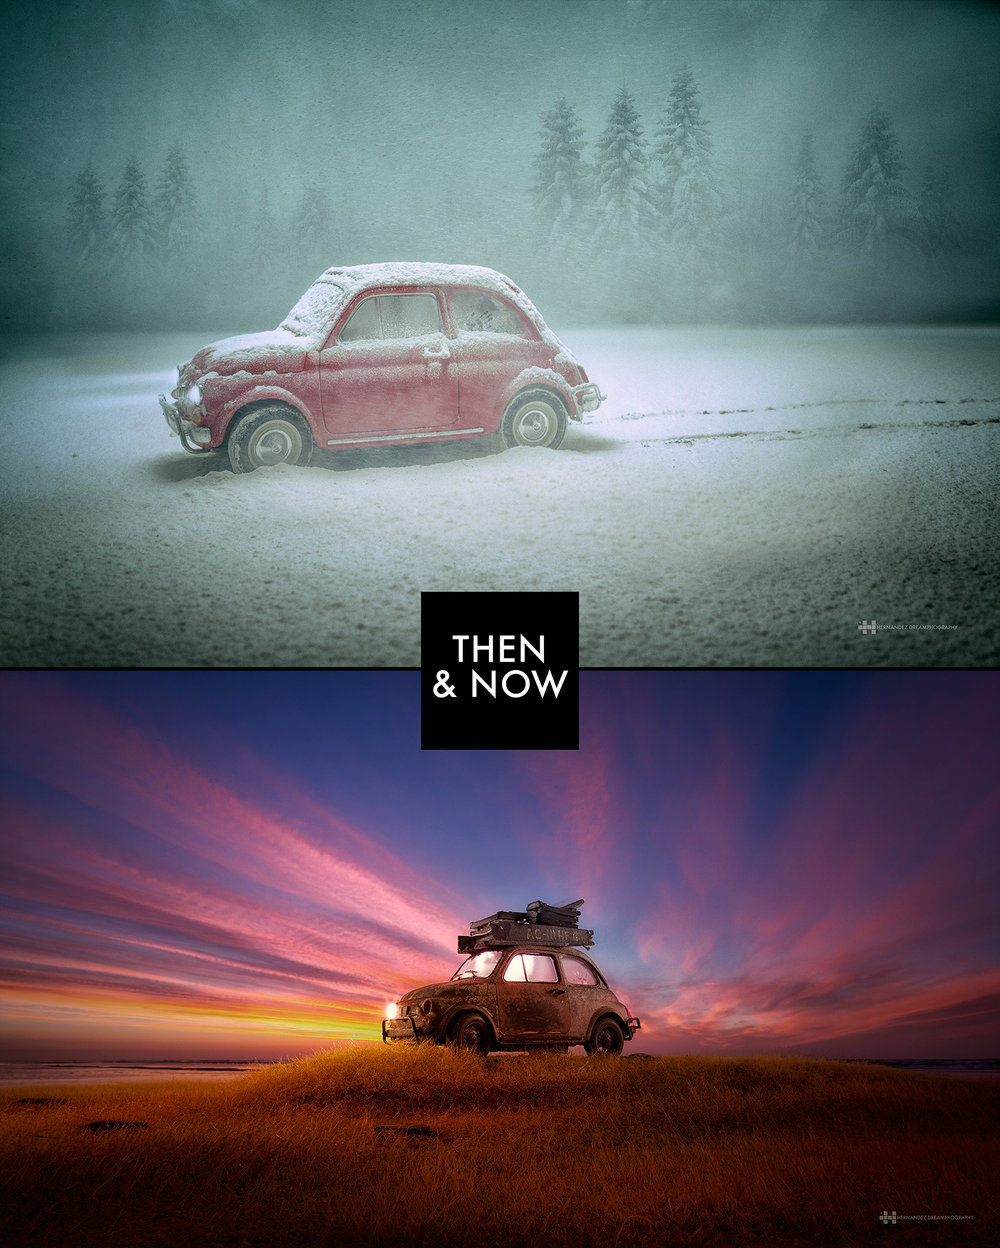 The-Love-Car-Then-and-Now.jpg